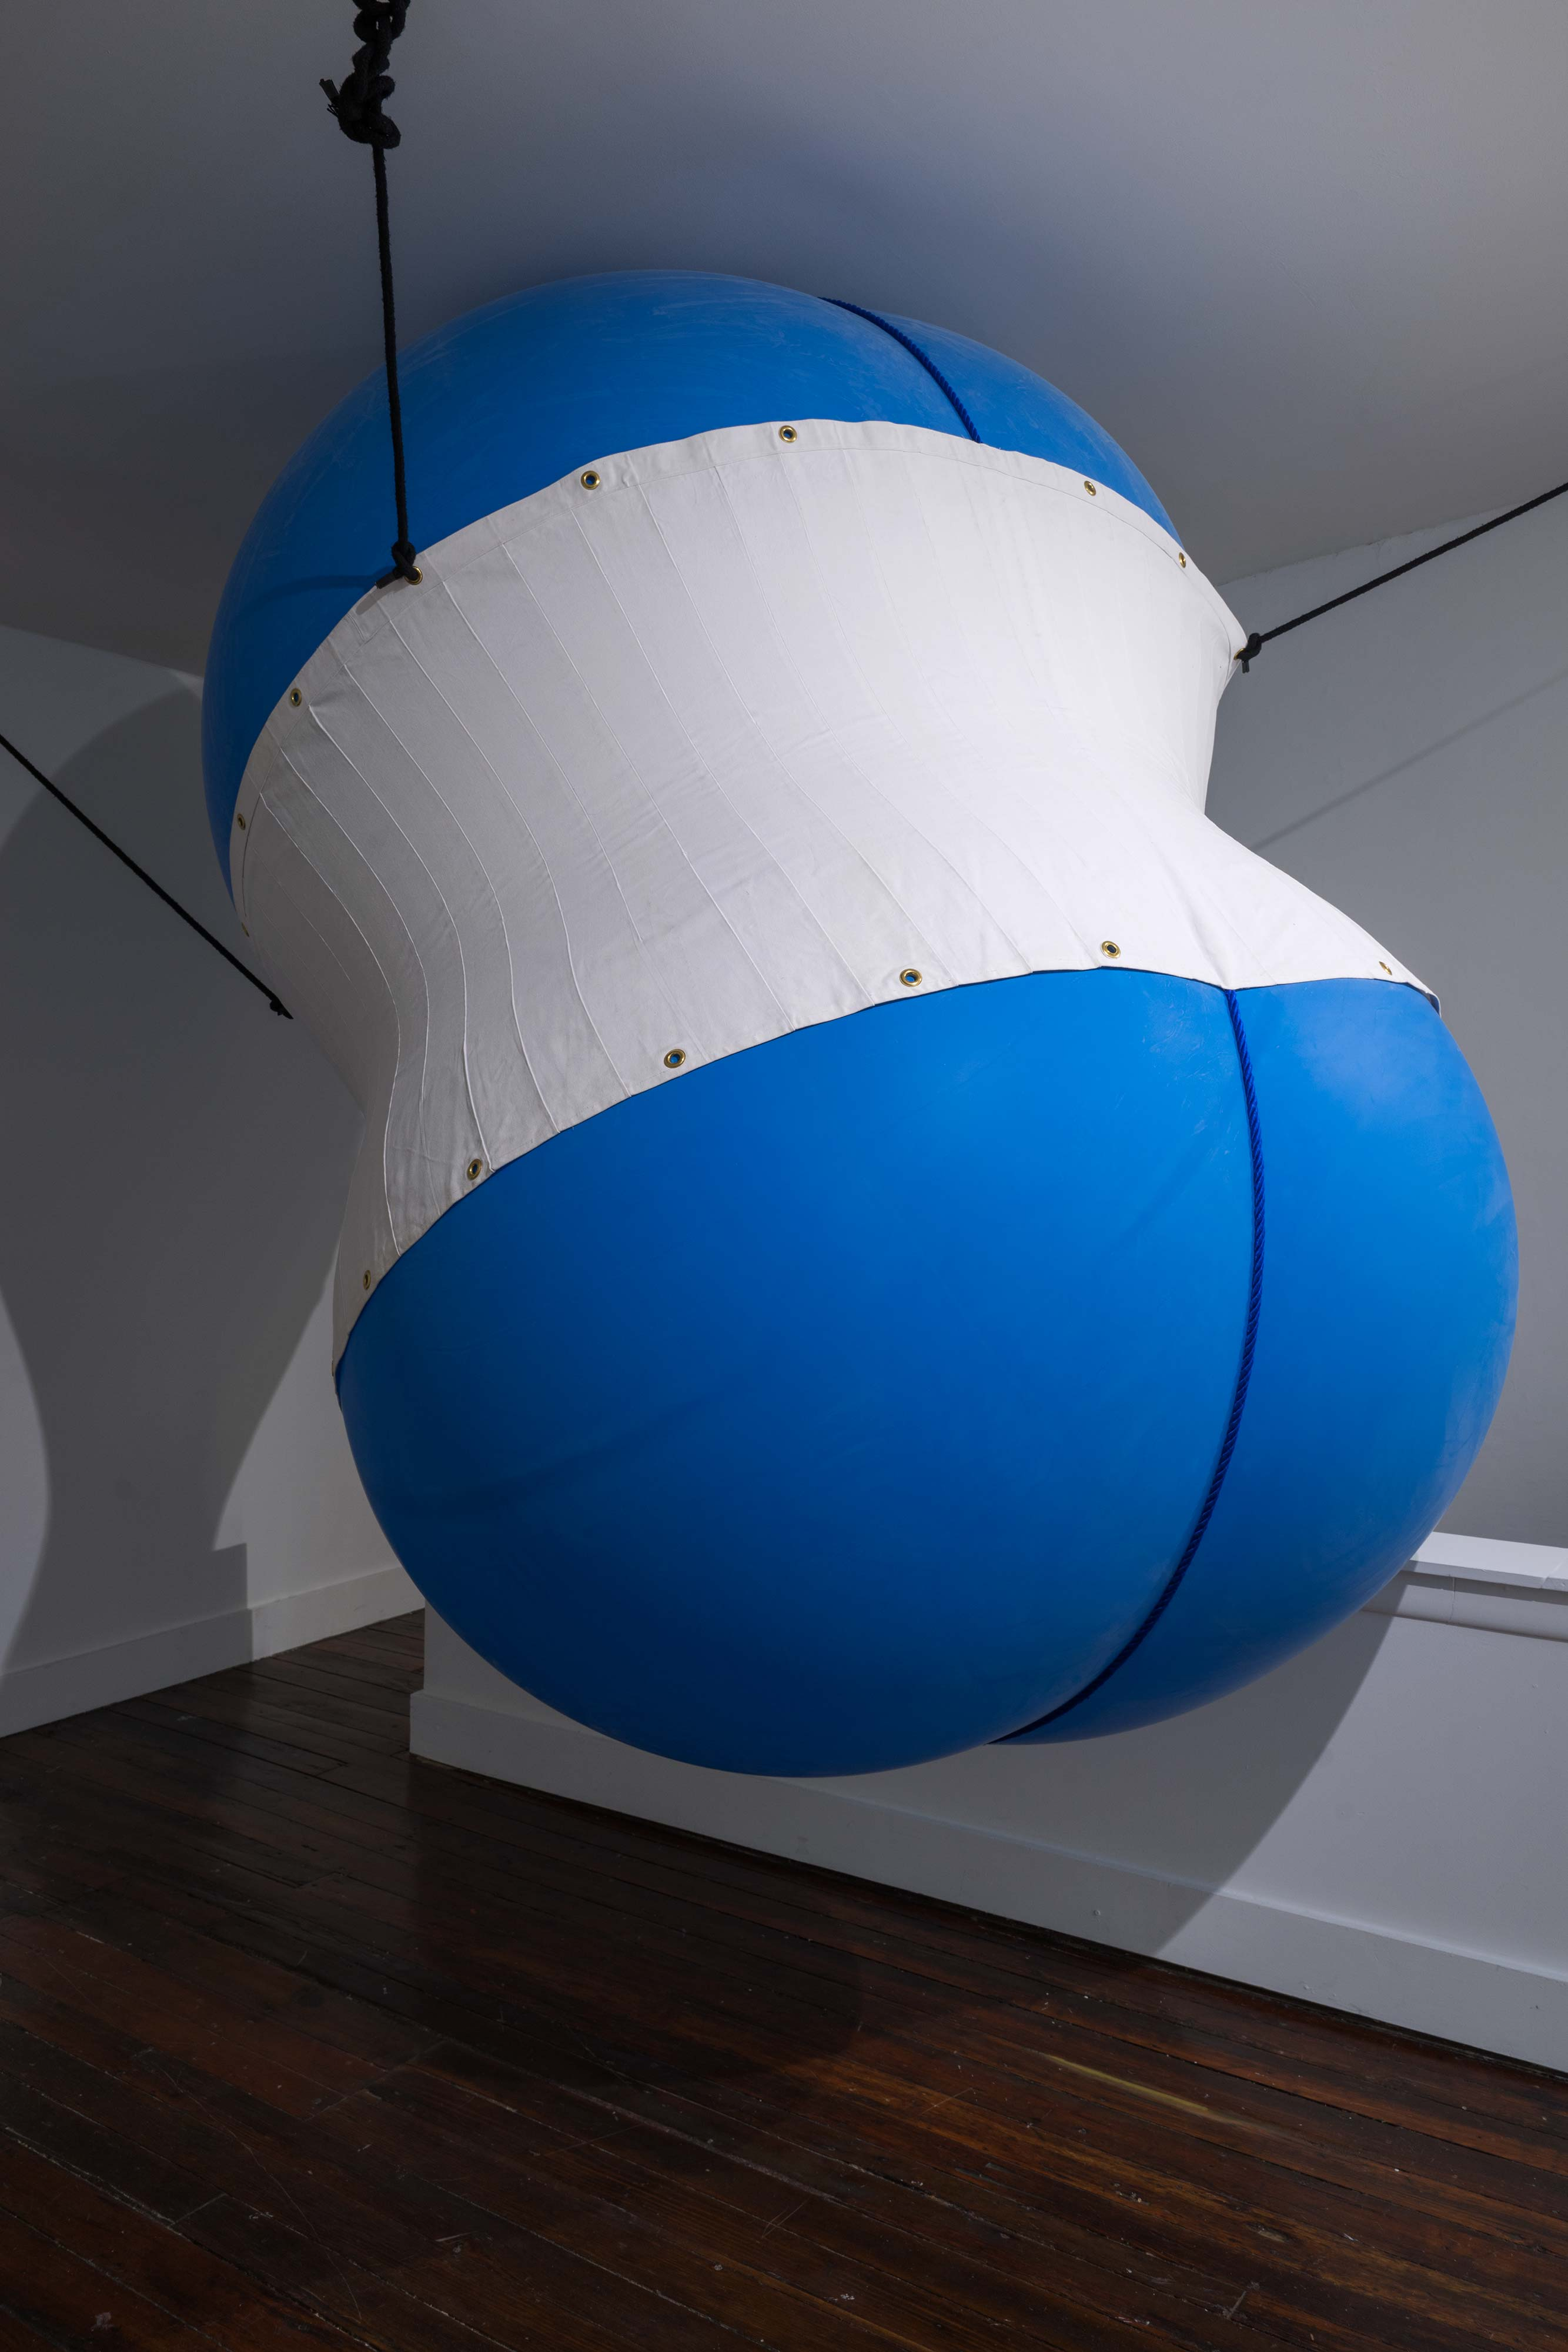 Nancy Davidson<br>Blue Moon (detail)<br>1998<br>Latex, rope, cotton<br>76 x 60 x 60 in (193 x 152 x 152 cm), installation variable